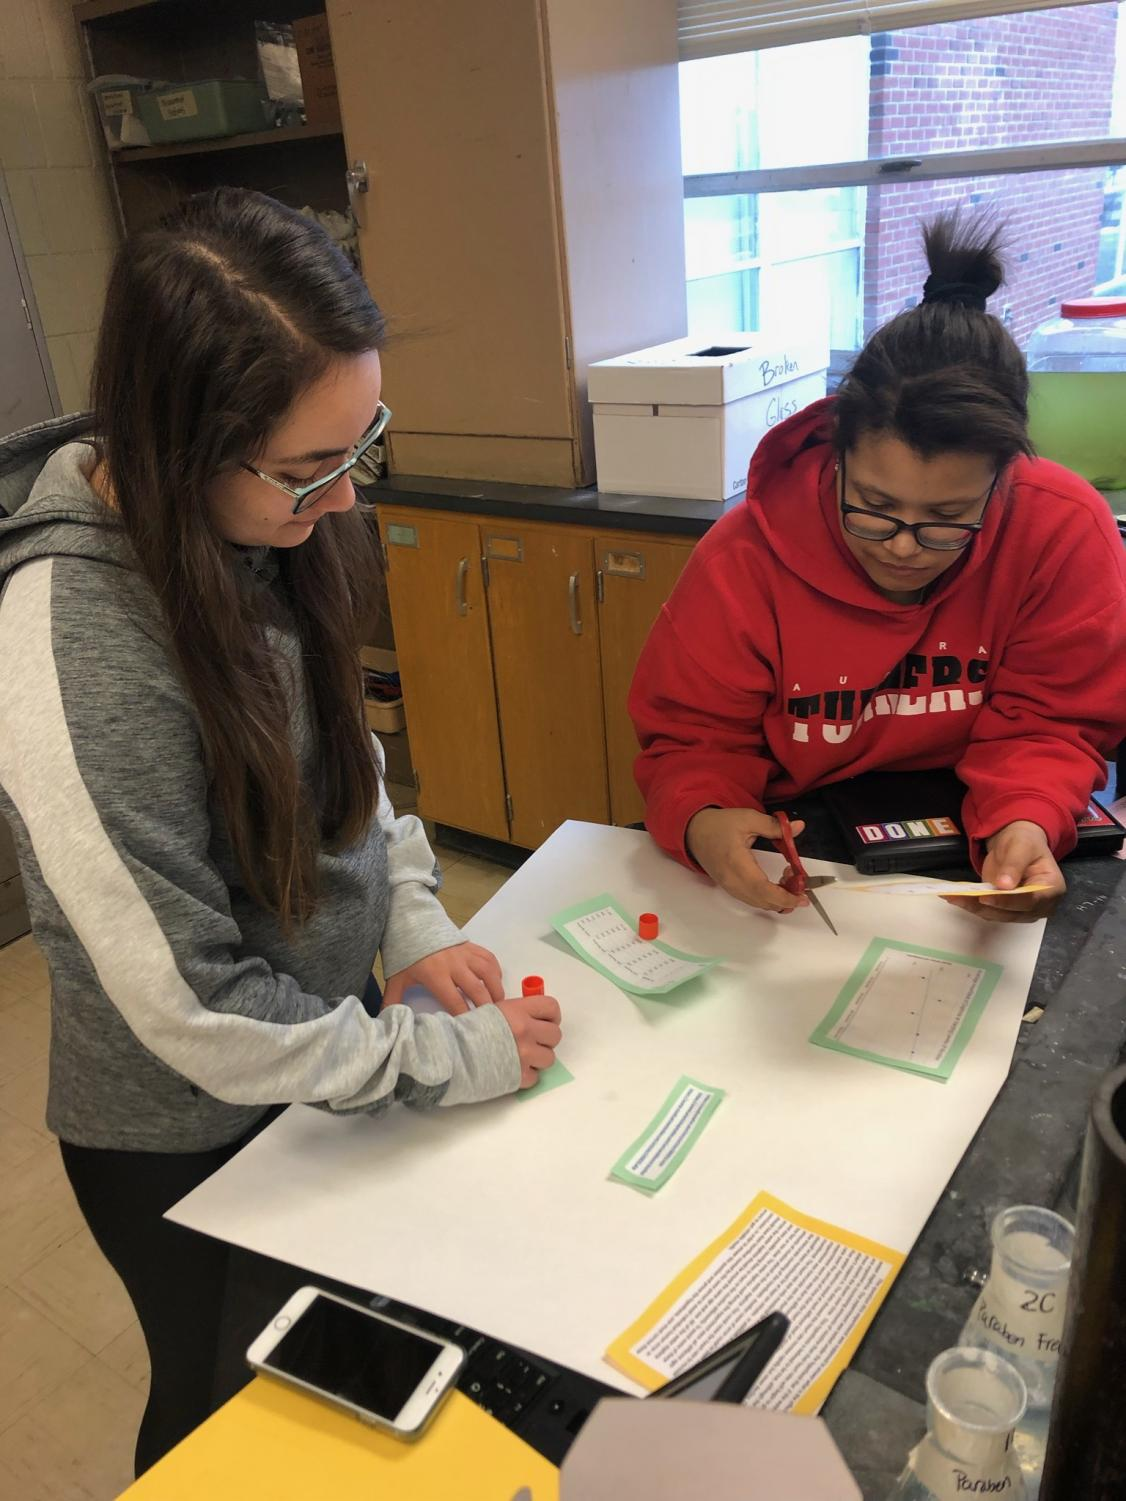 Environmental Science students, Abriana Ruiz and Teagan Jordan, gather the results of their study on the effects of vaping into a poster report.